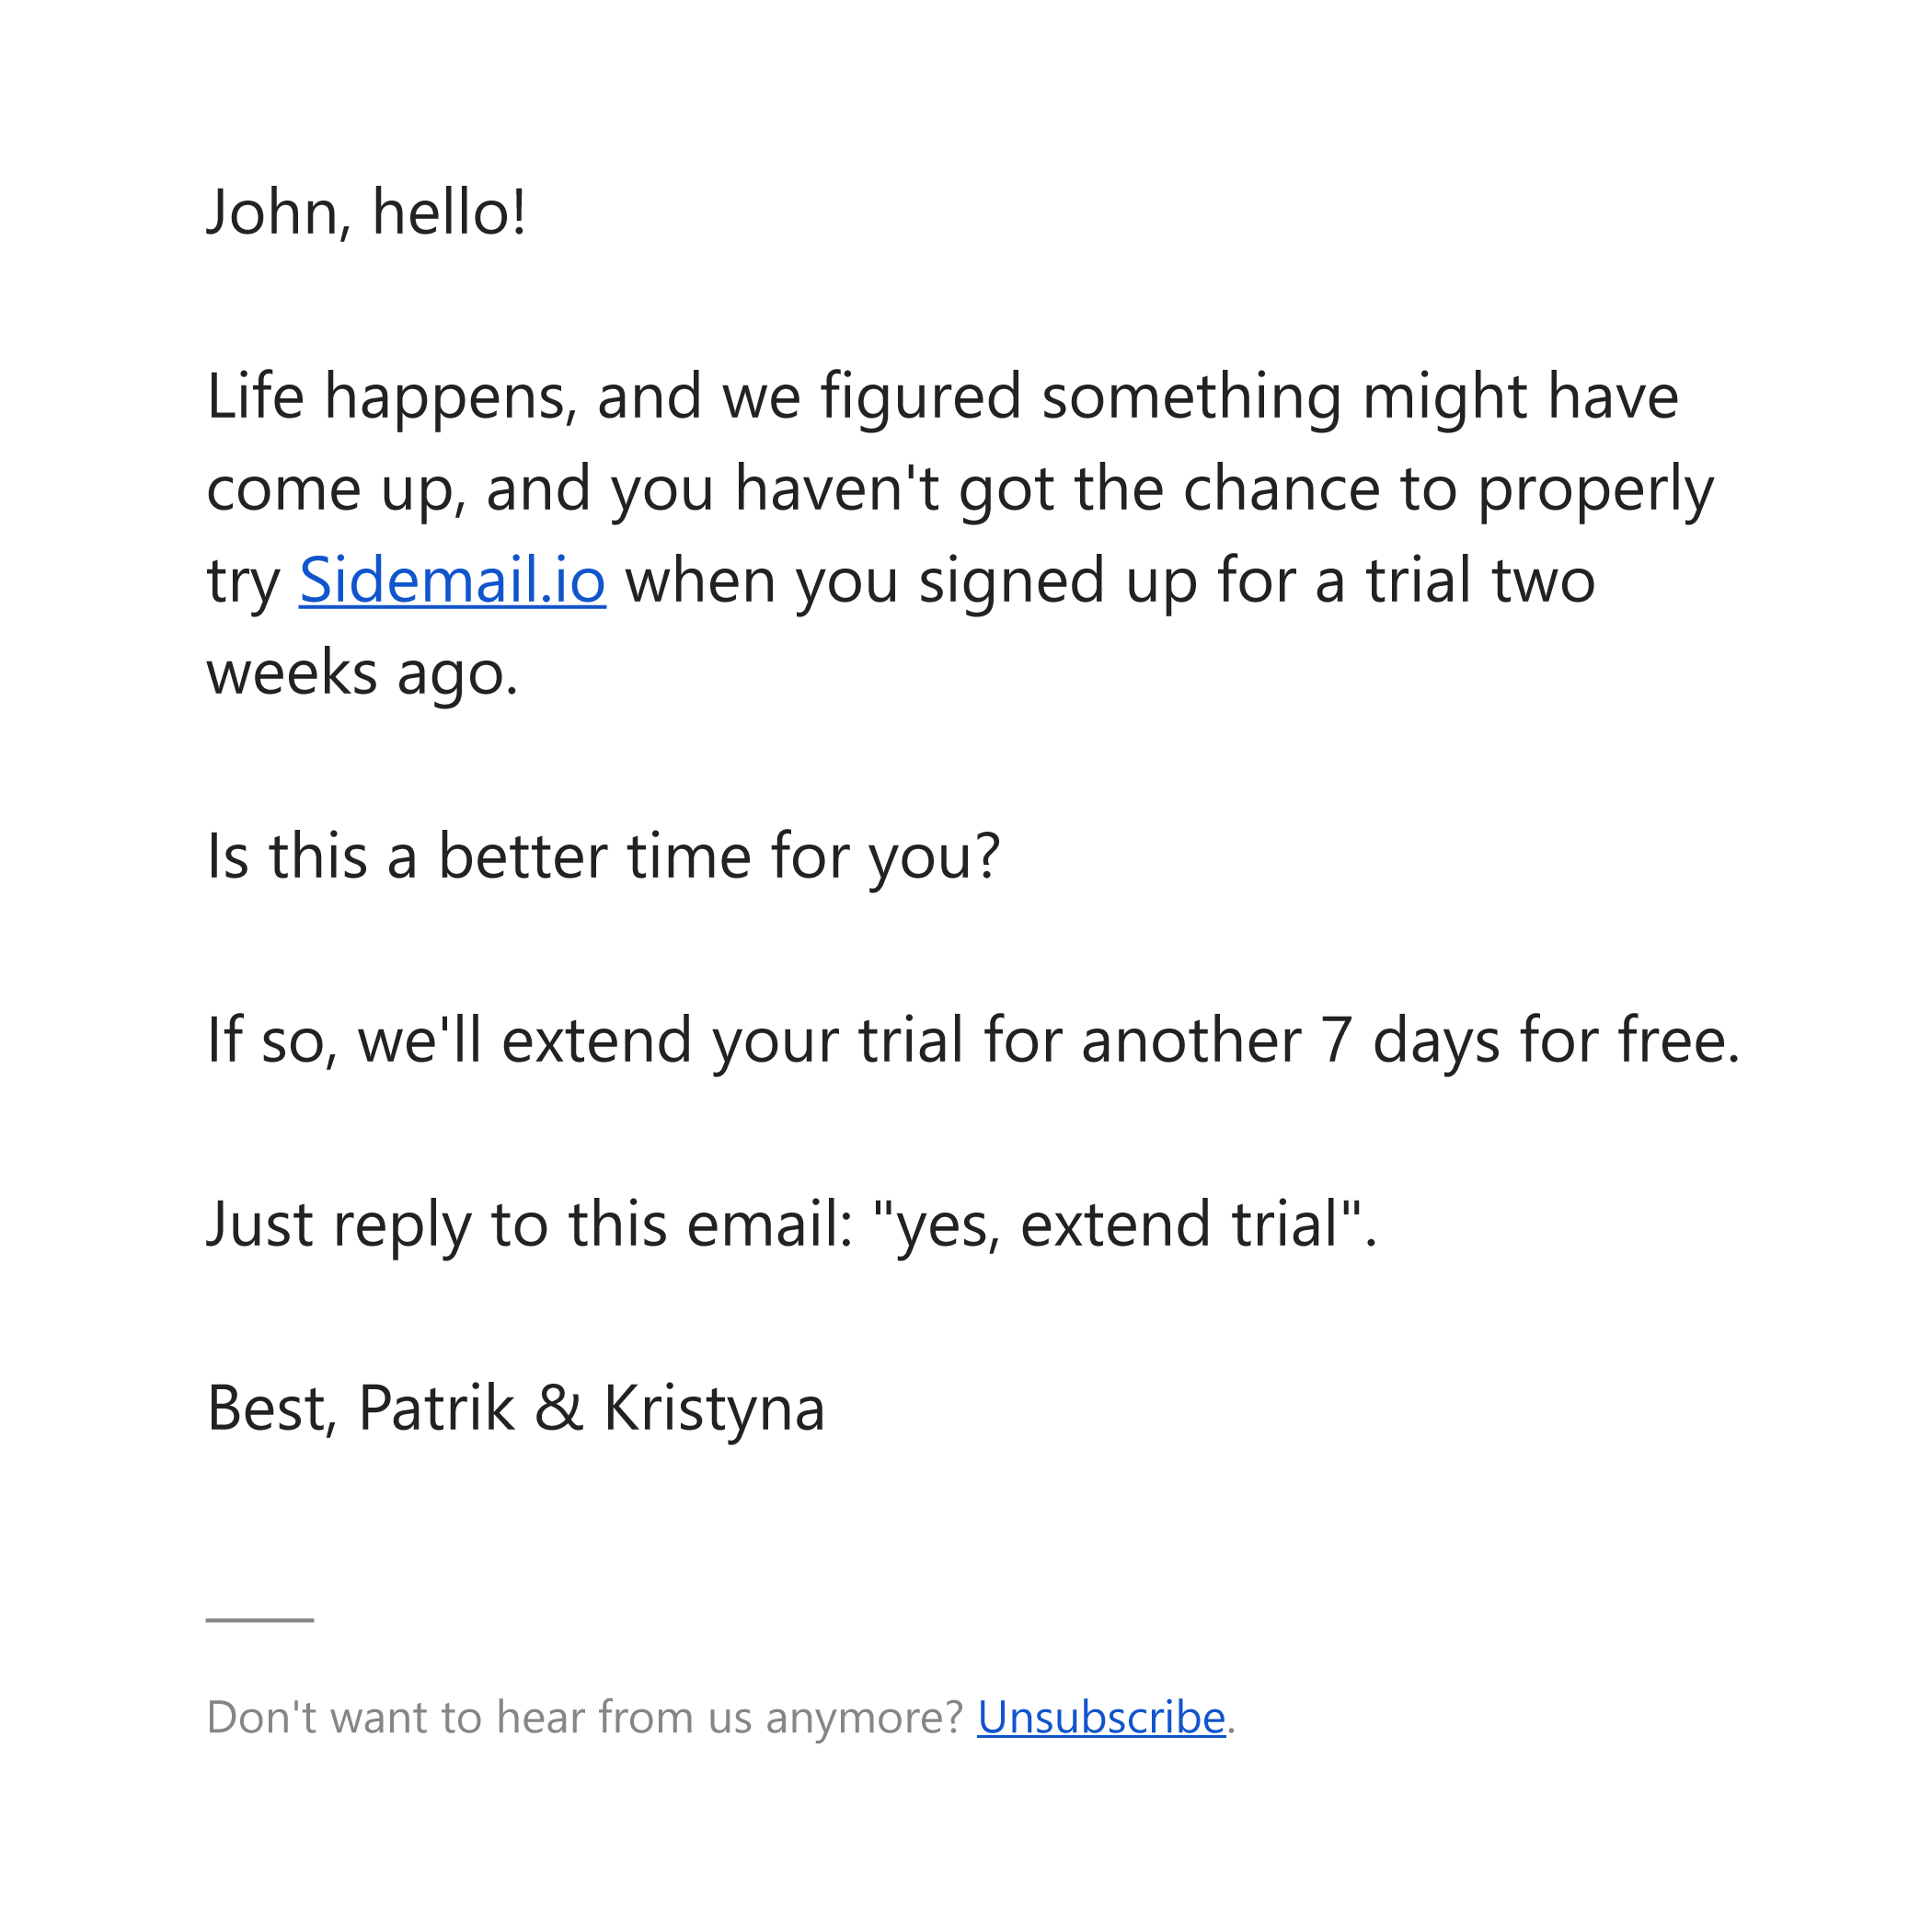 An example of text-based email